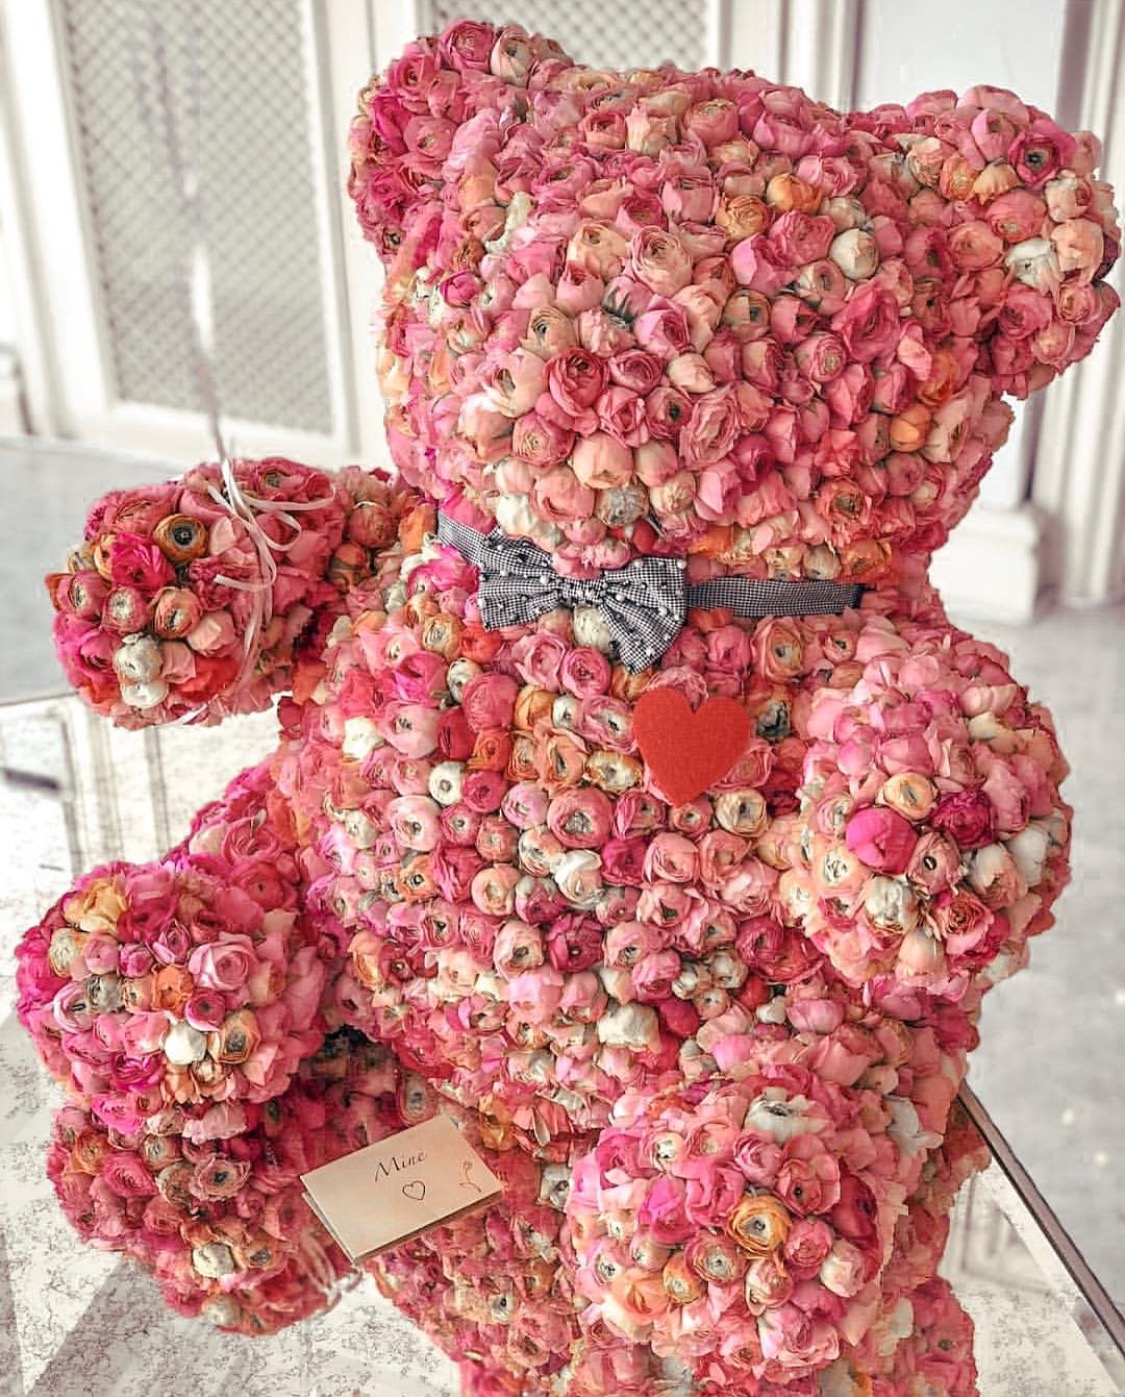 Teddy bear with pink roses - photo#50